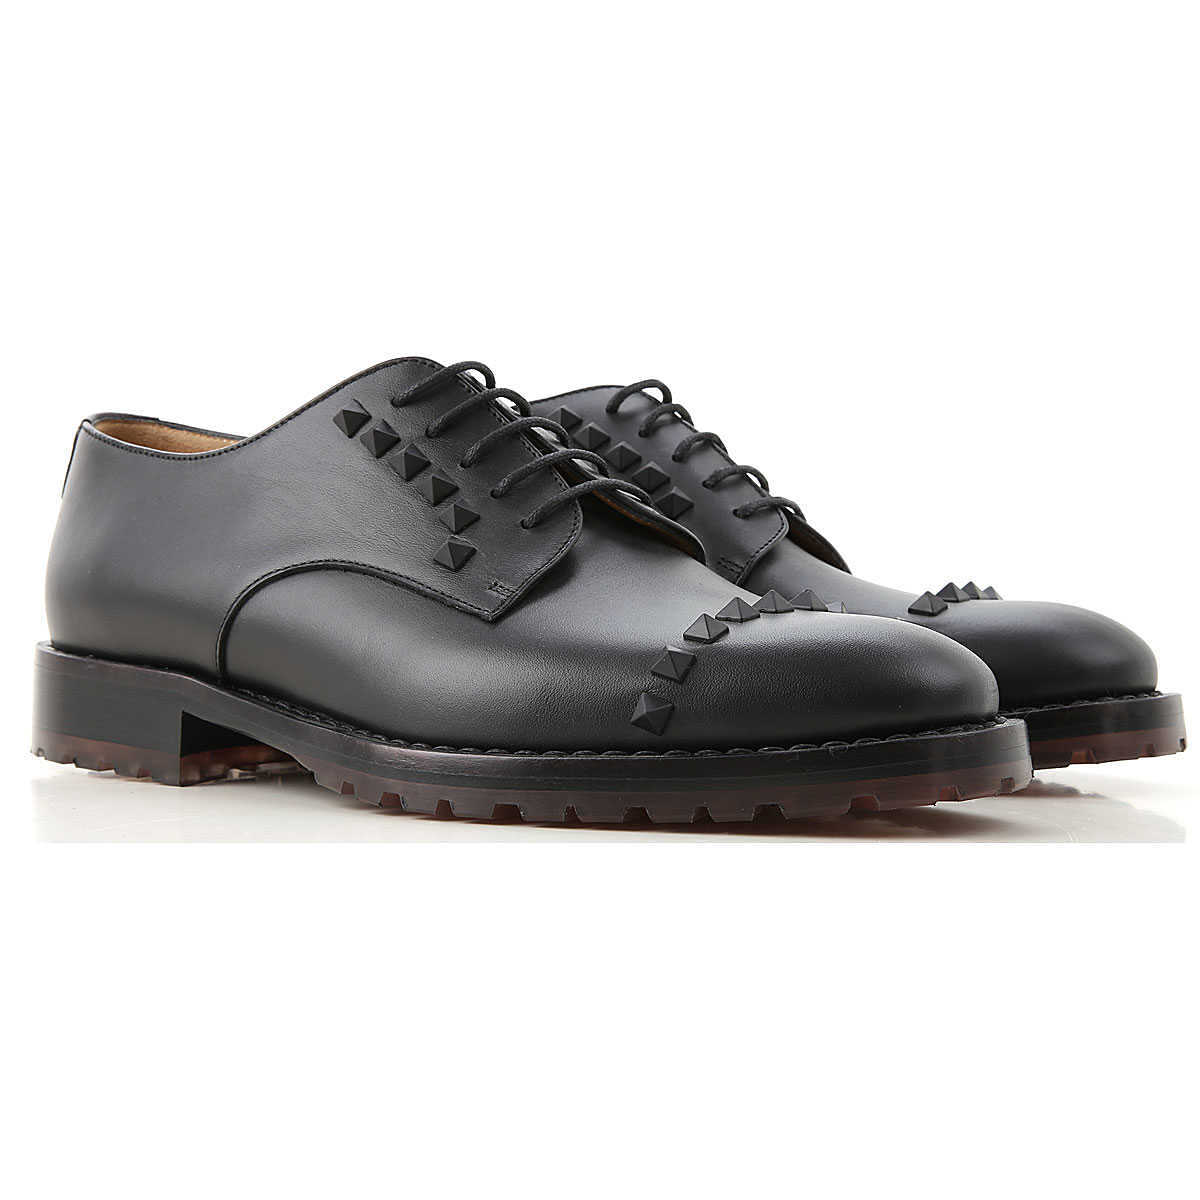 Valentino Garavani Lace Up Shoes for Men Oxfords 6.5 9 Derbies and Brogues On Sale UK - GOOFASH